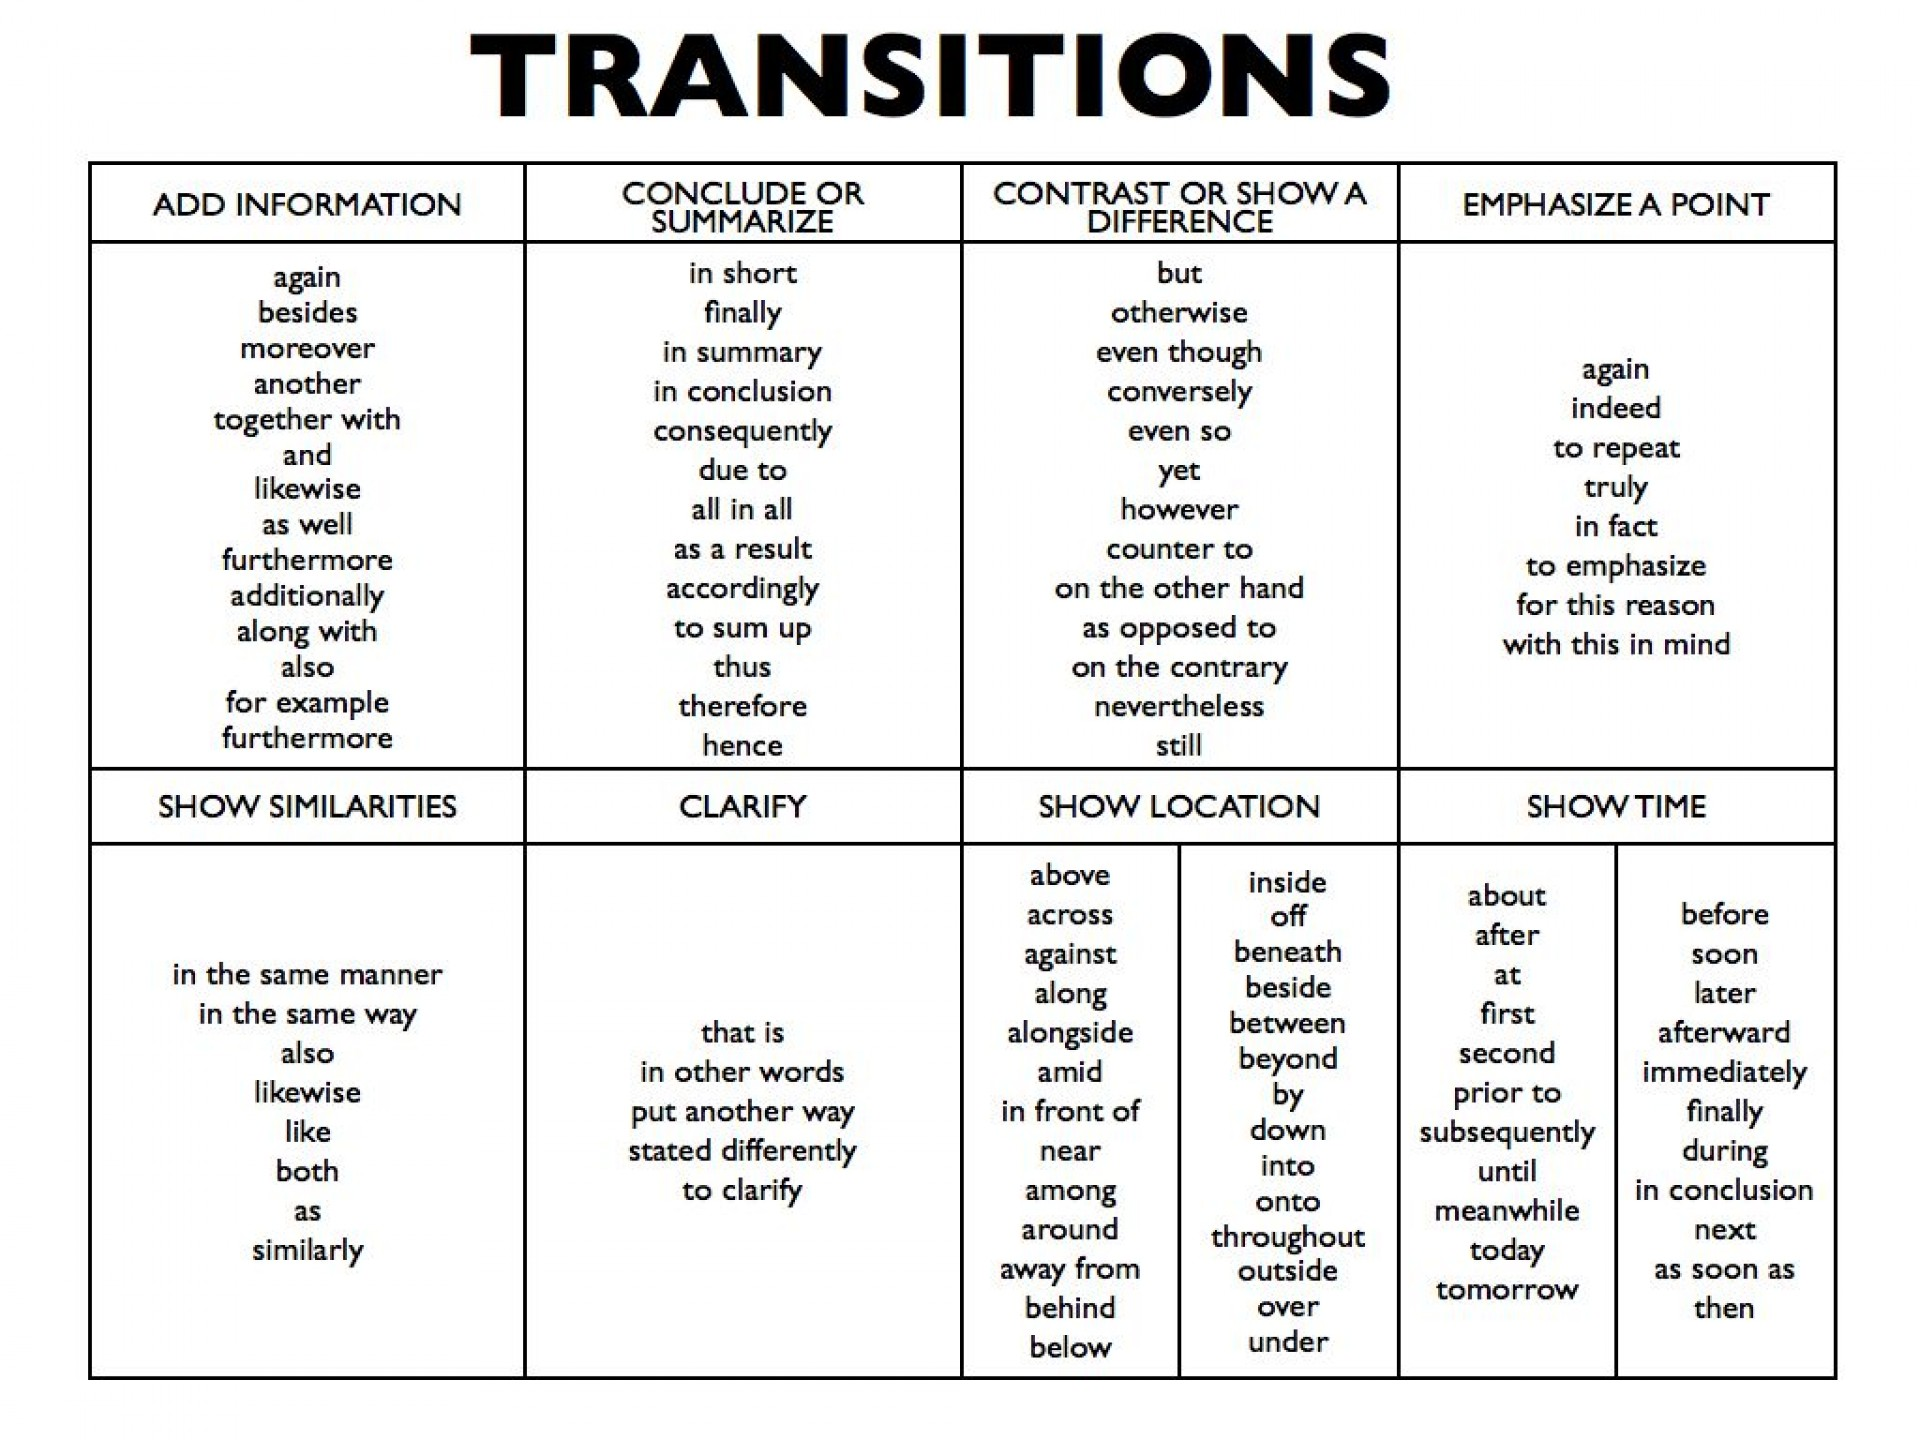 005 Essay Example Transitions 4995883 1 Orig Archaicawful Persuasive Transition Phrases Conclusion Words List Between Paragraphs 1920